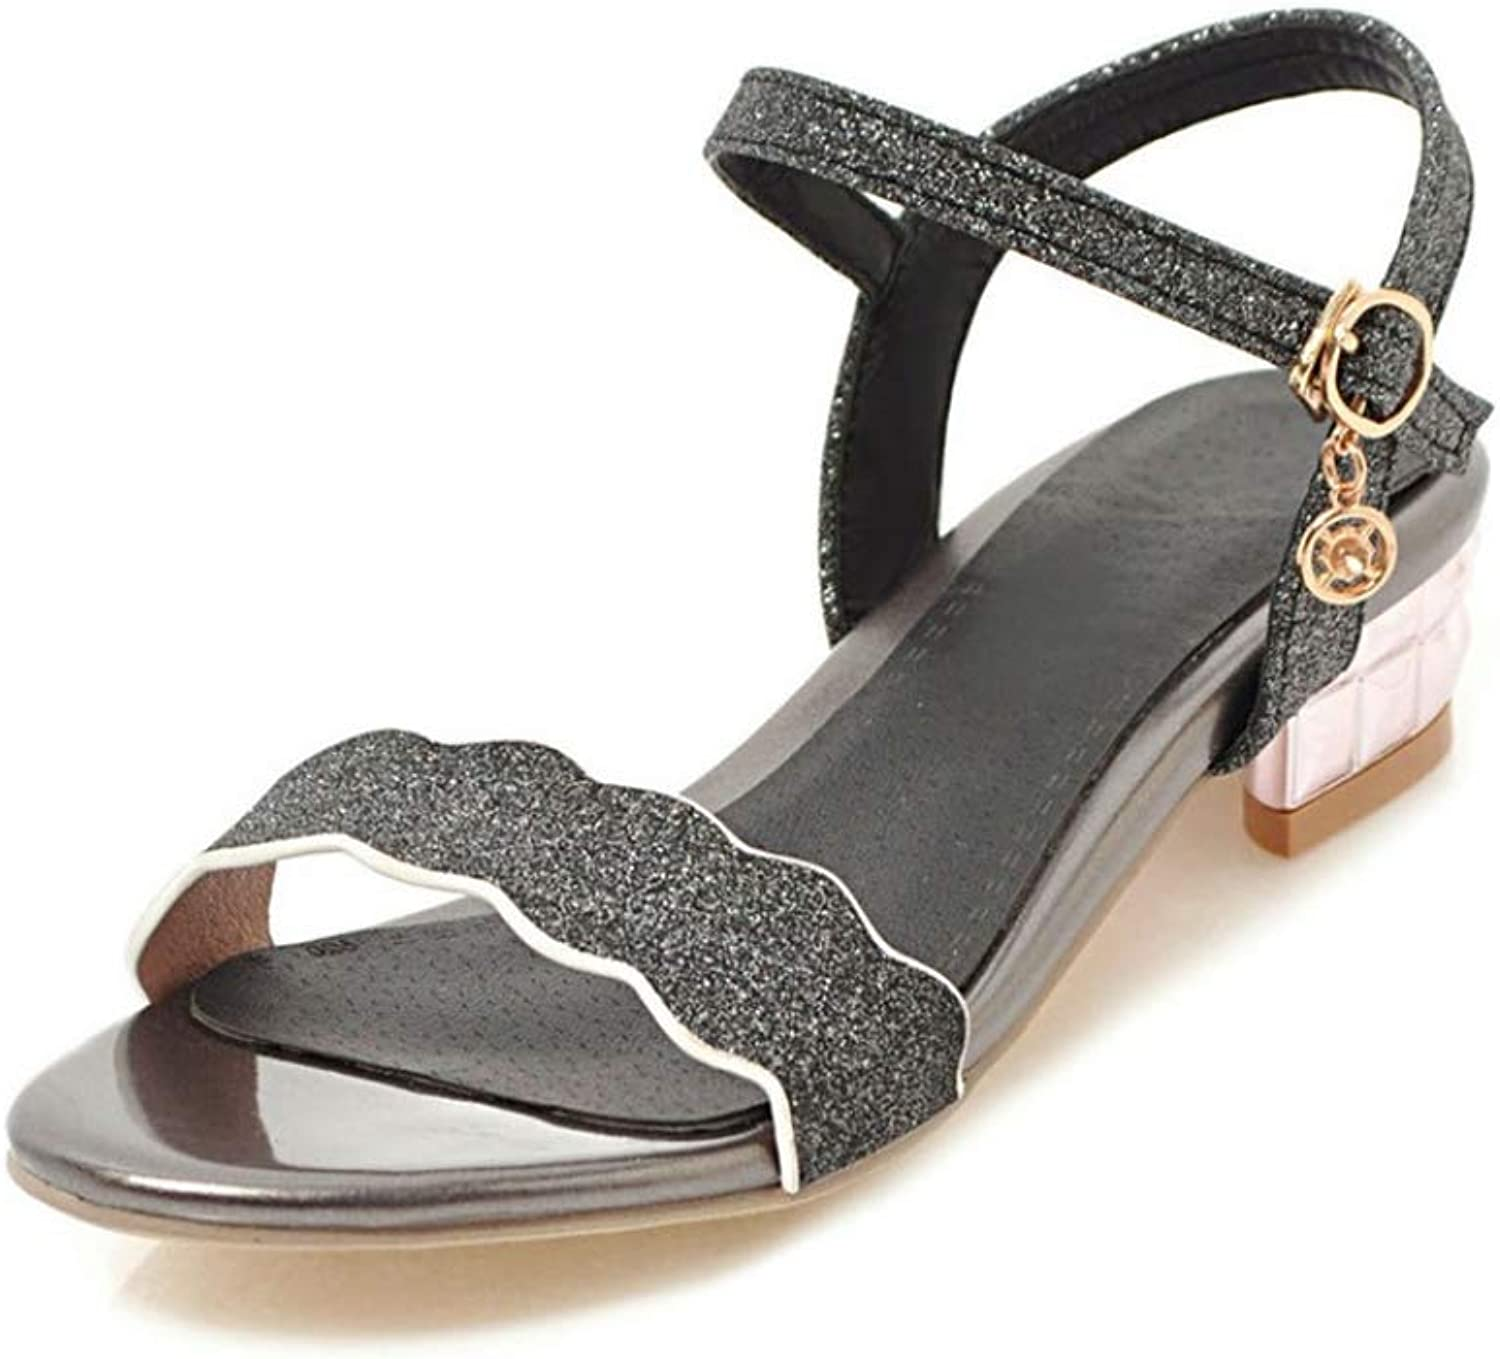 T-JULY Sequined Cloth Women Sandals Simple Buckle Summer shoes Casual Square Heels shoes